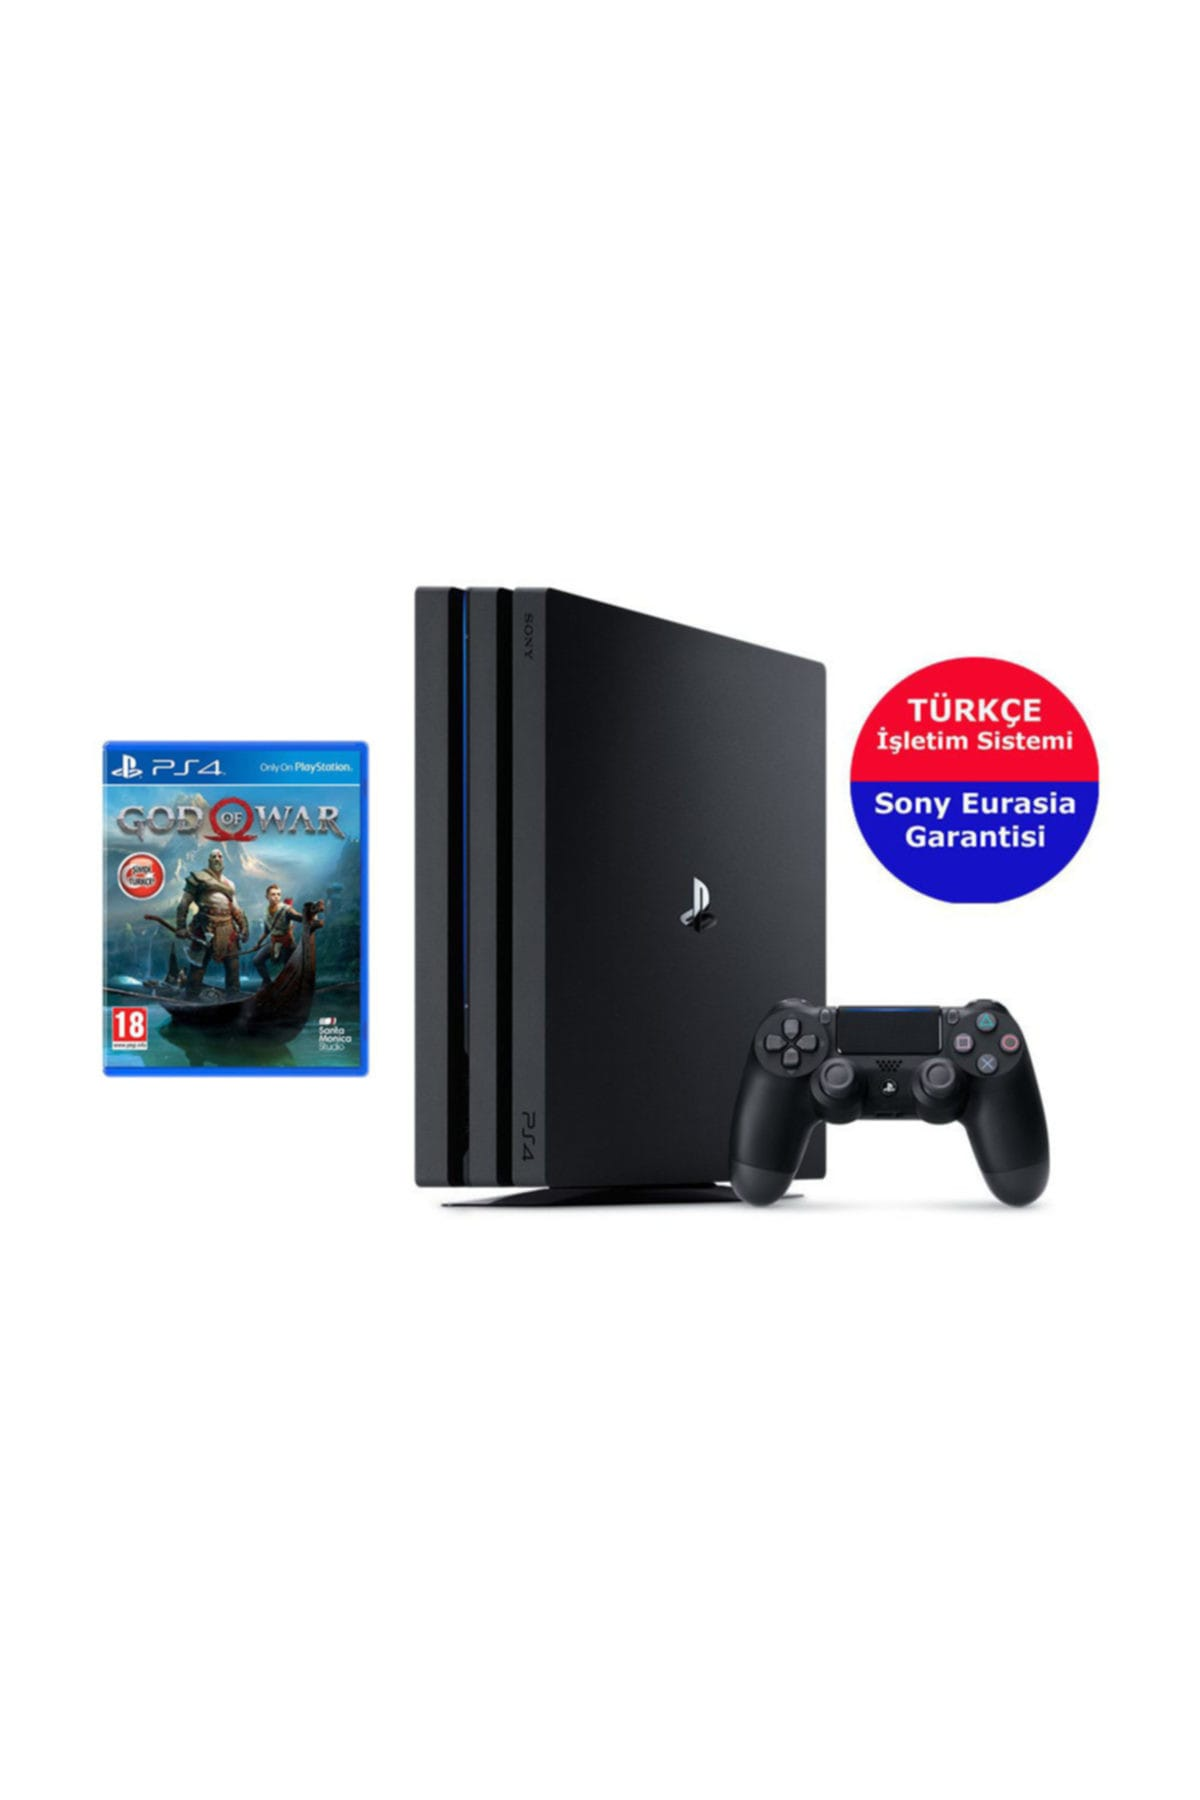 Sony Ps4 Pro 1 Tb + God Of